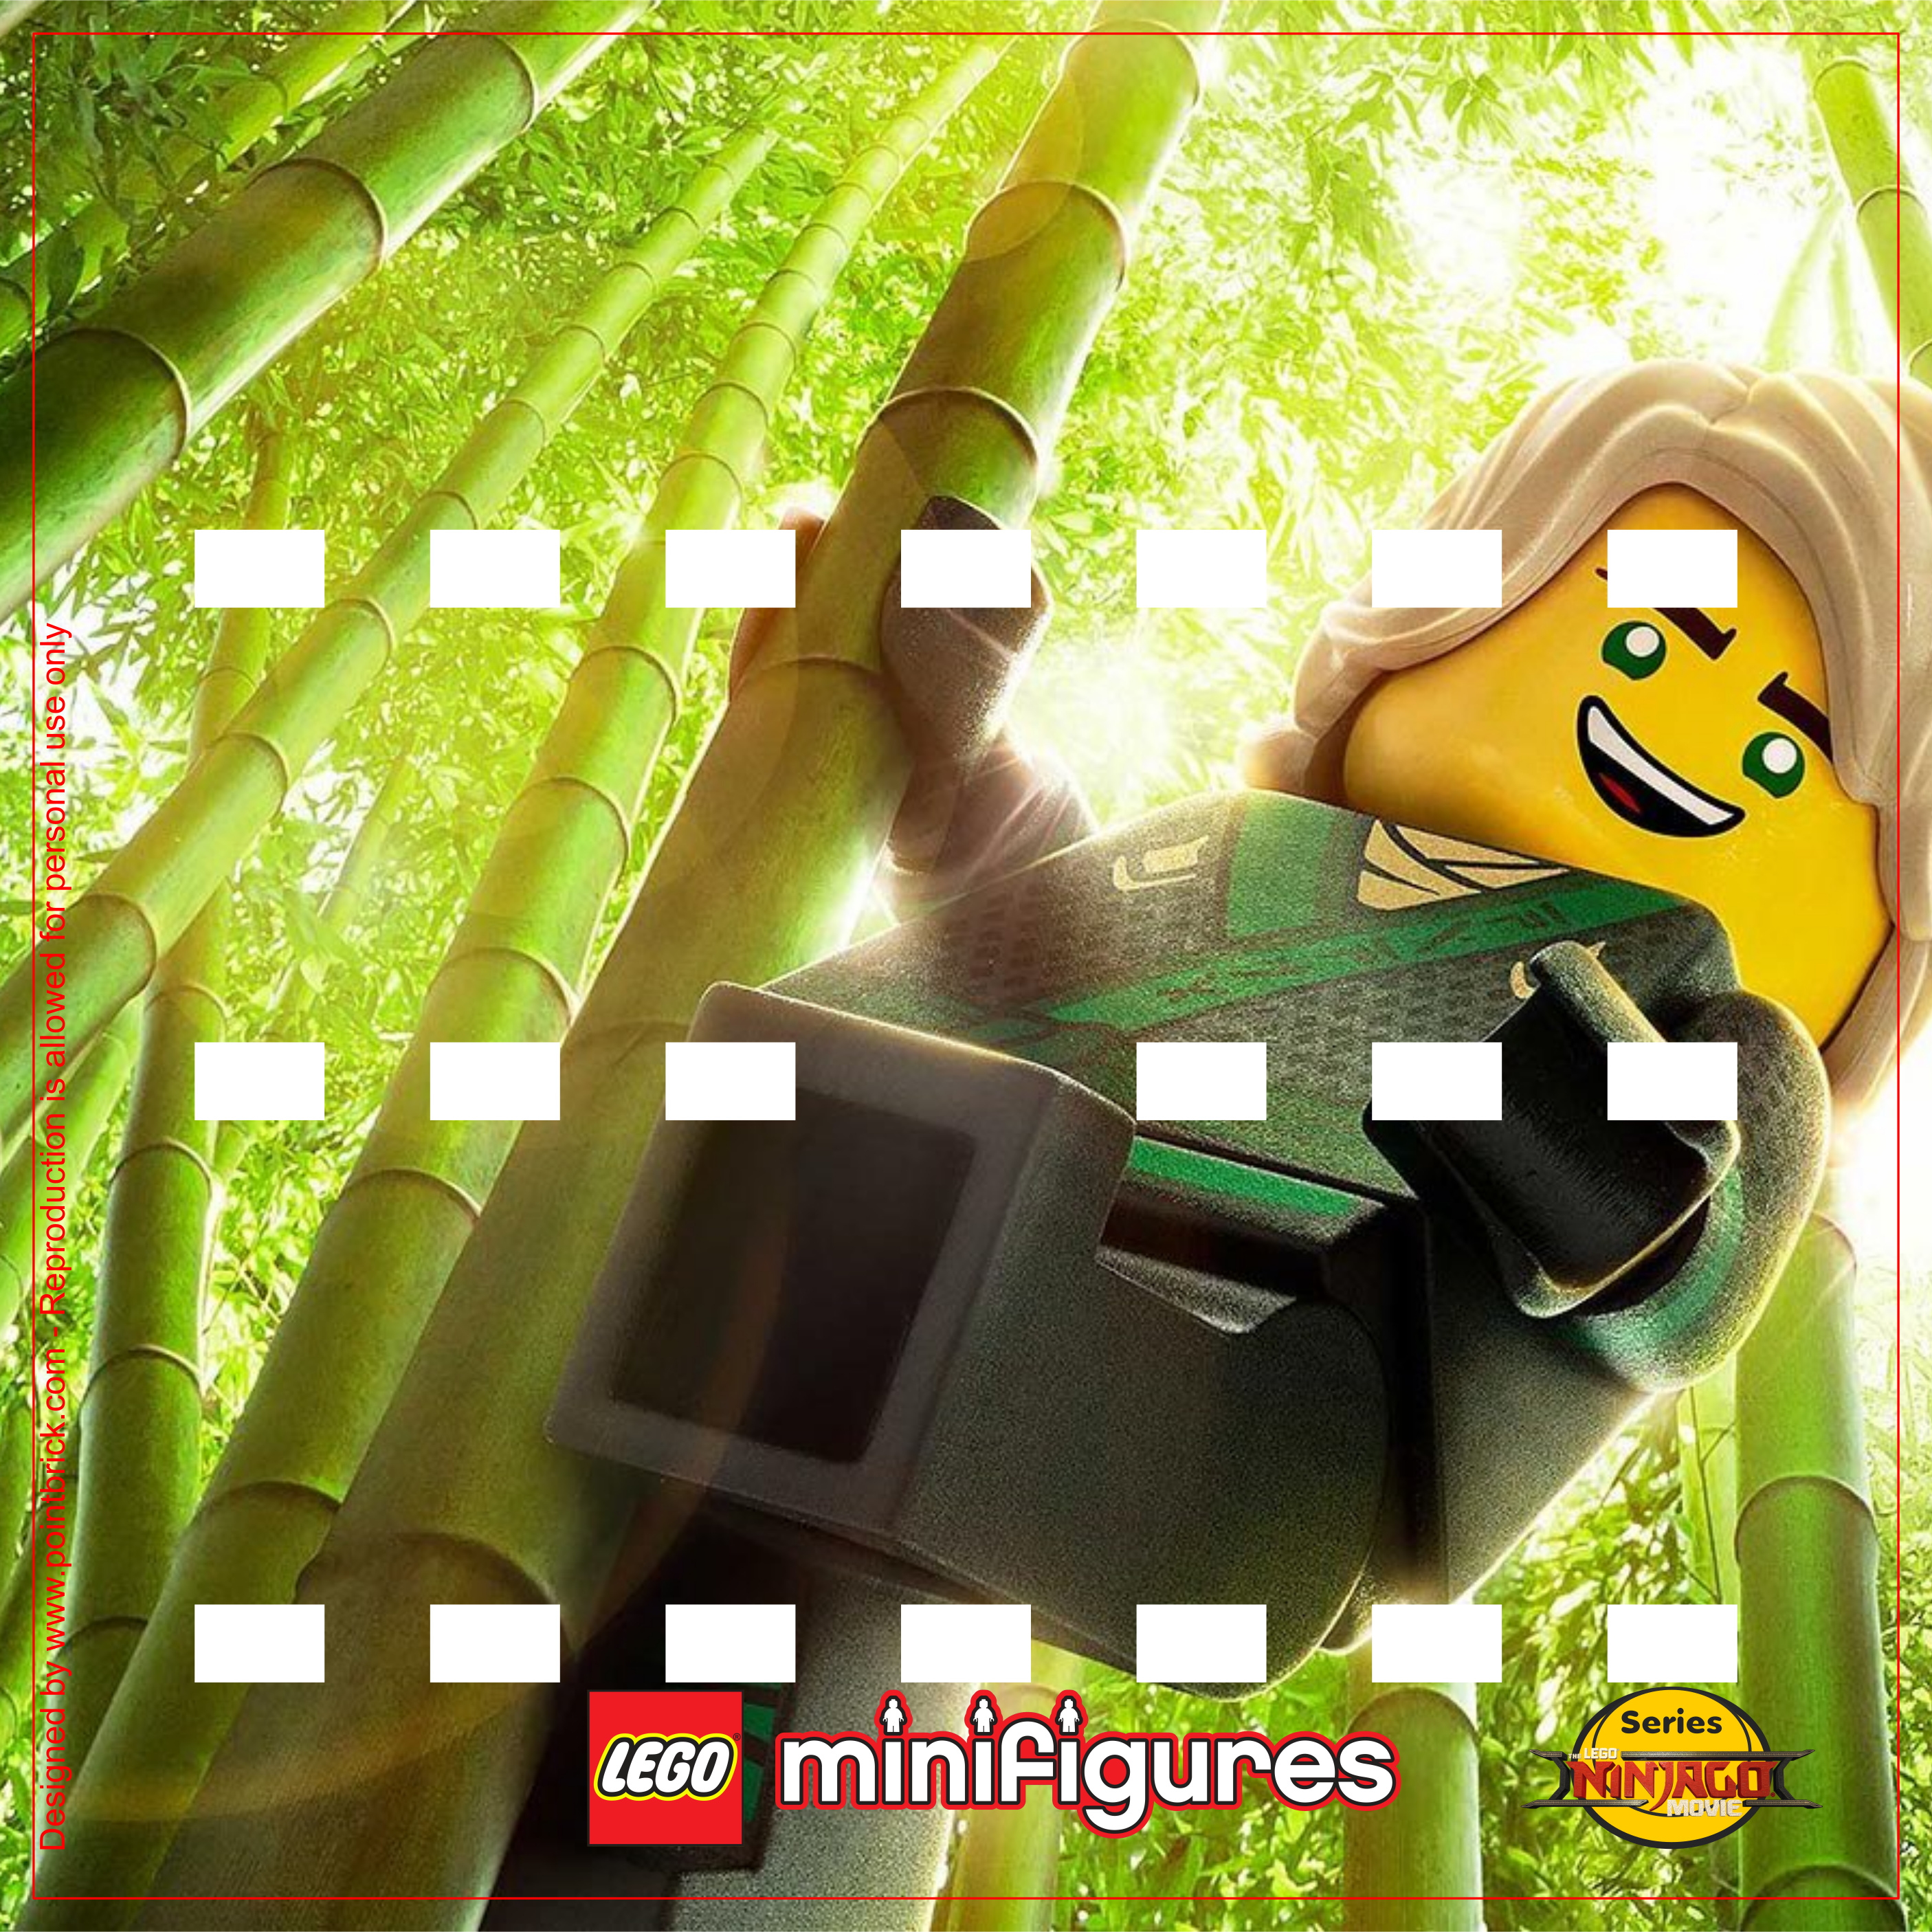 LEGO Minifigures 71019 The LEGO Ninjago Movie Lloyd - Display Frame Background 230mm - Clicca sull'immagine per scaricarla gratuitamente!